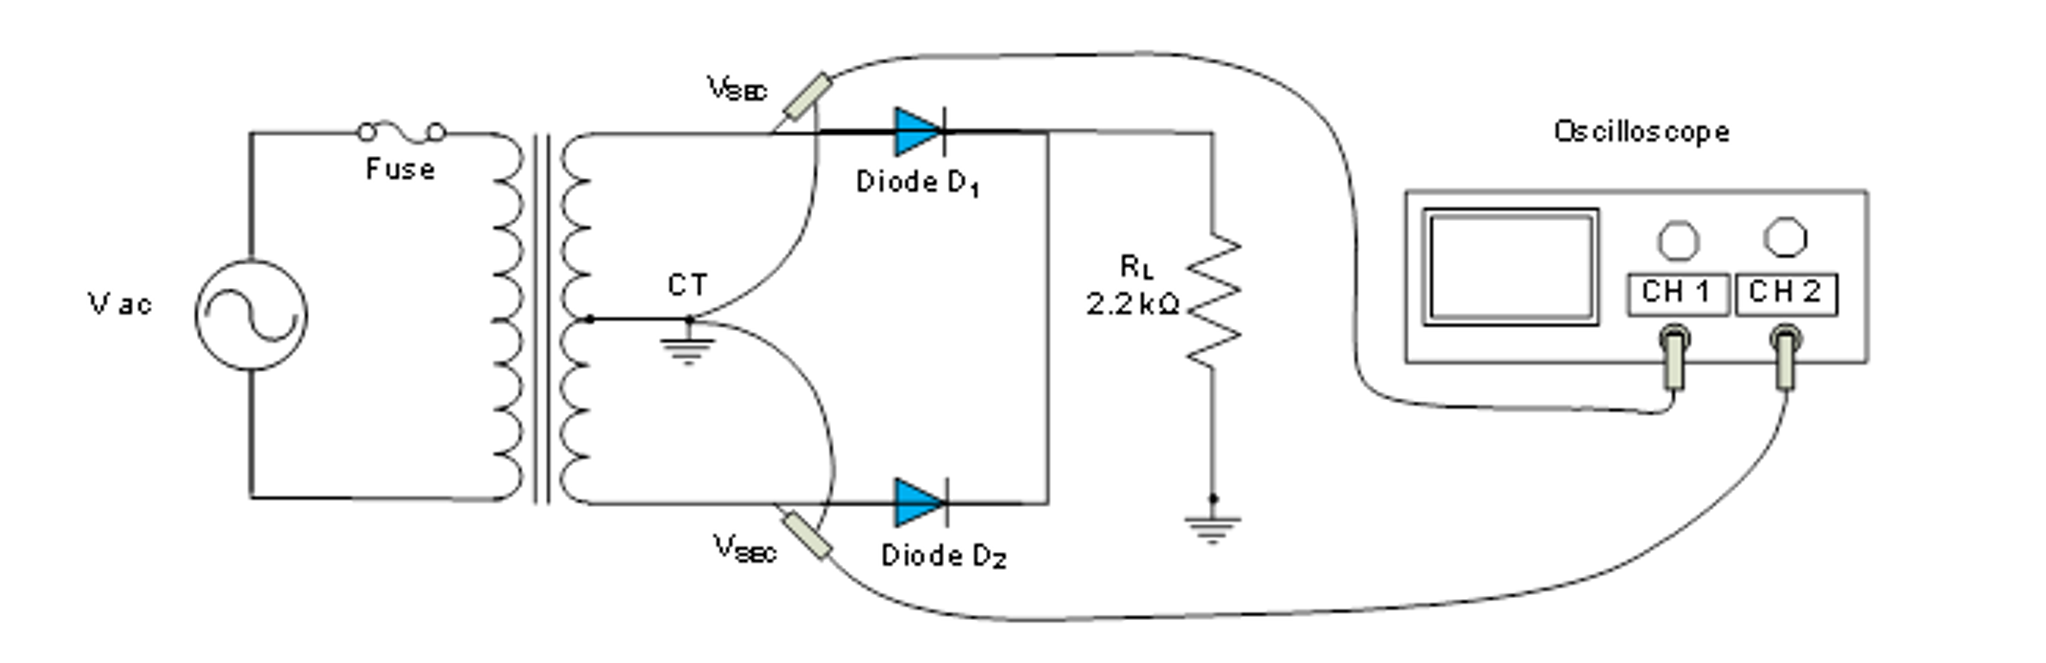 Review questions: Compare a bridge rectifier circuit with full-wave  rectifier center-tapped circuit which you did in Lab 2. Which circuit has  the higher ...